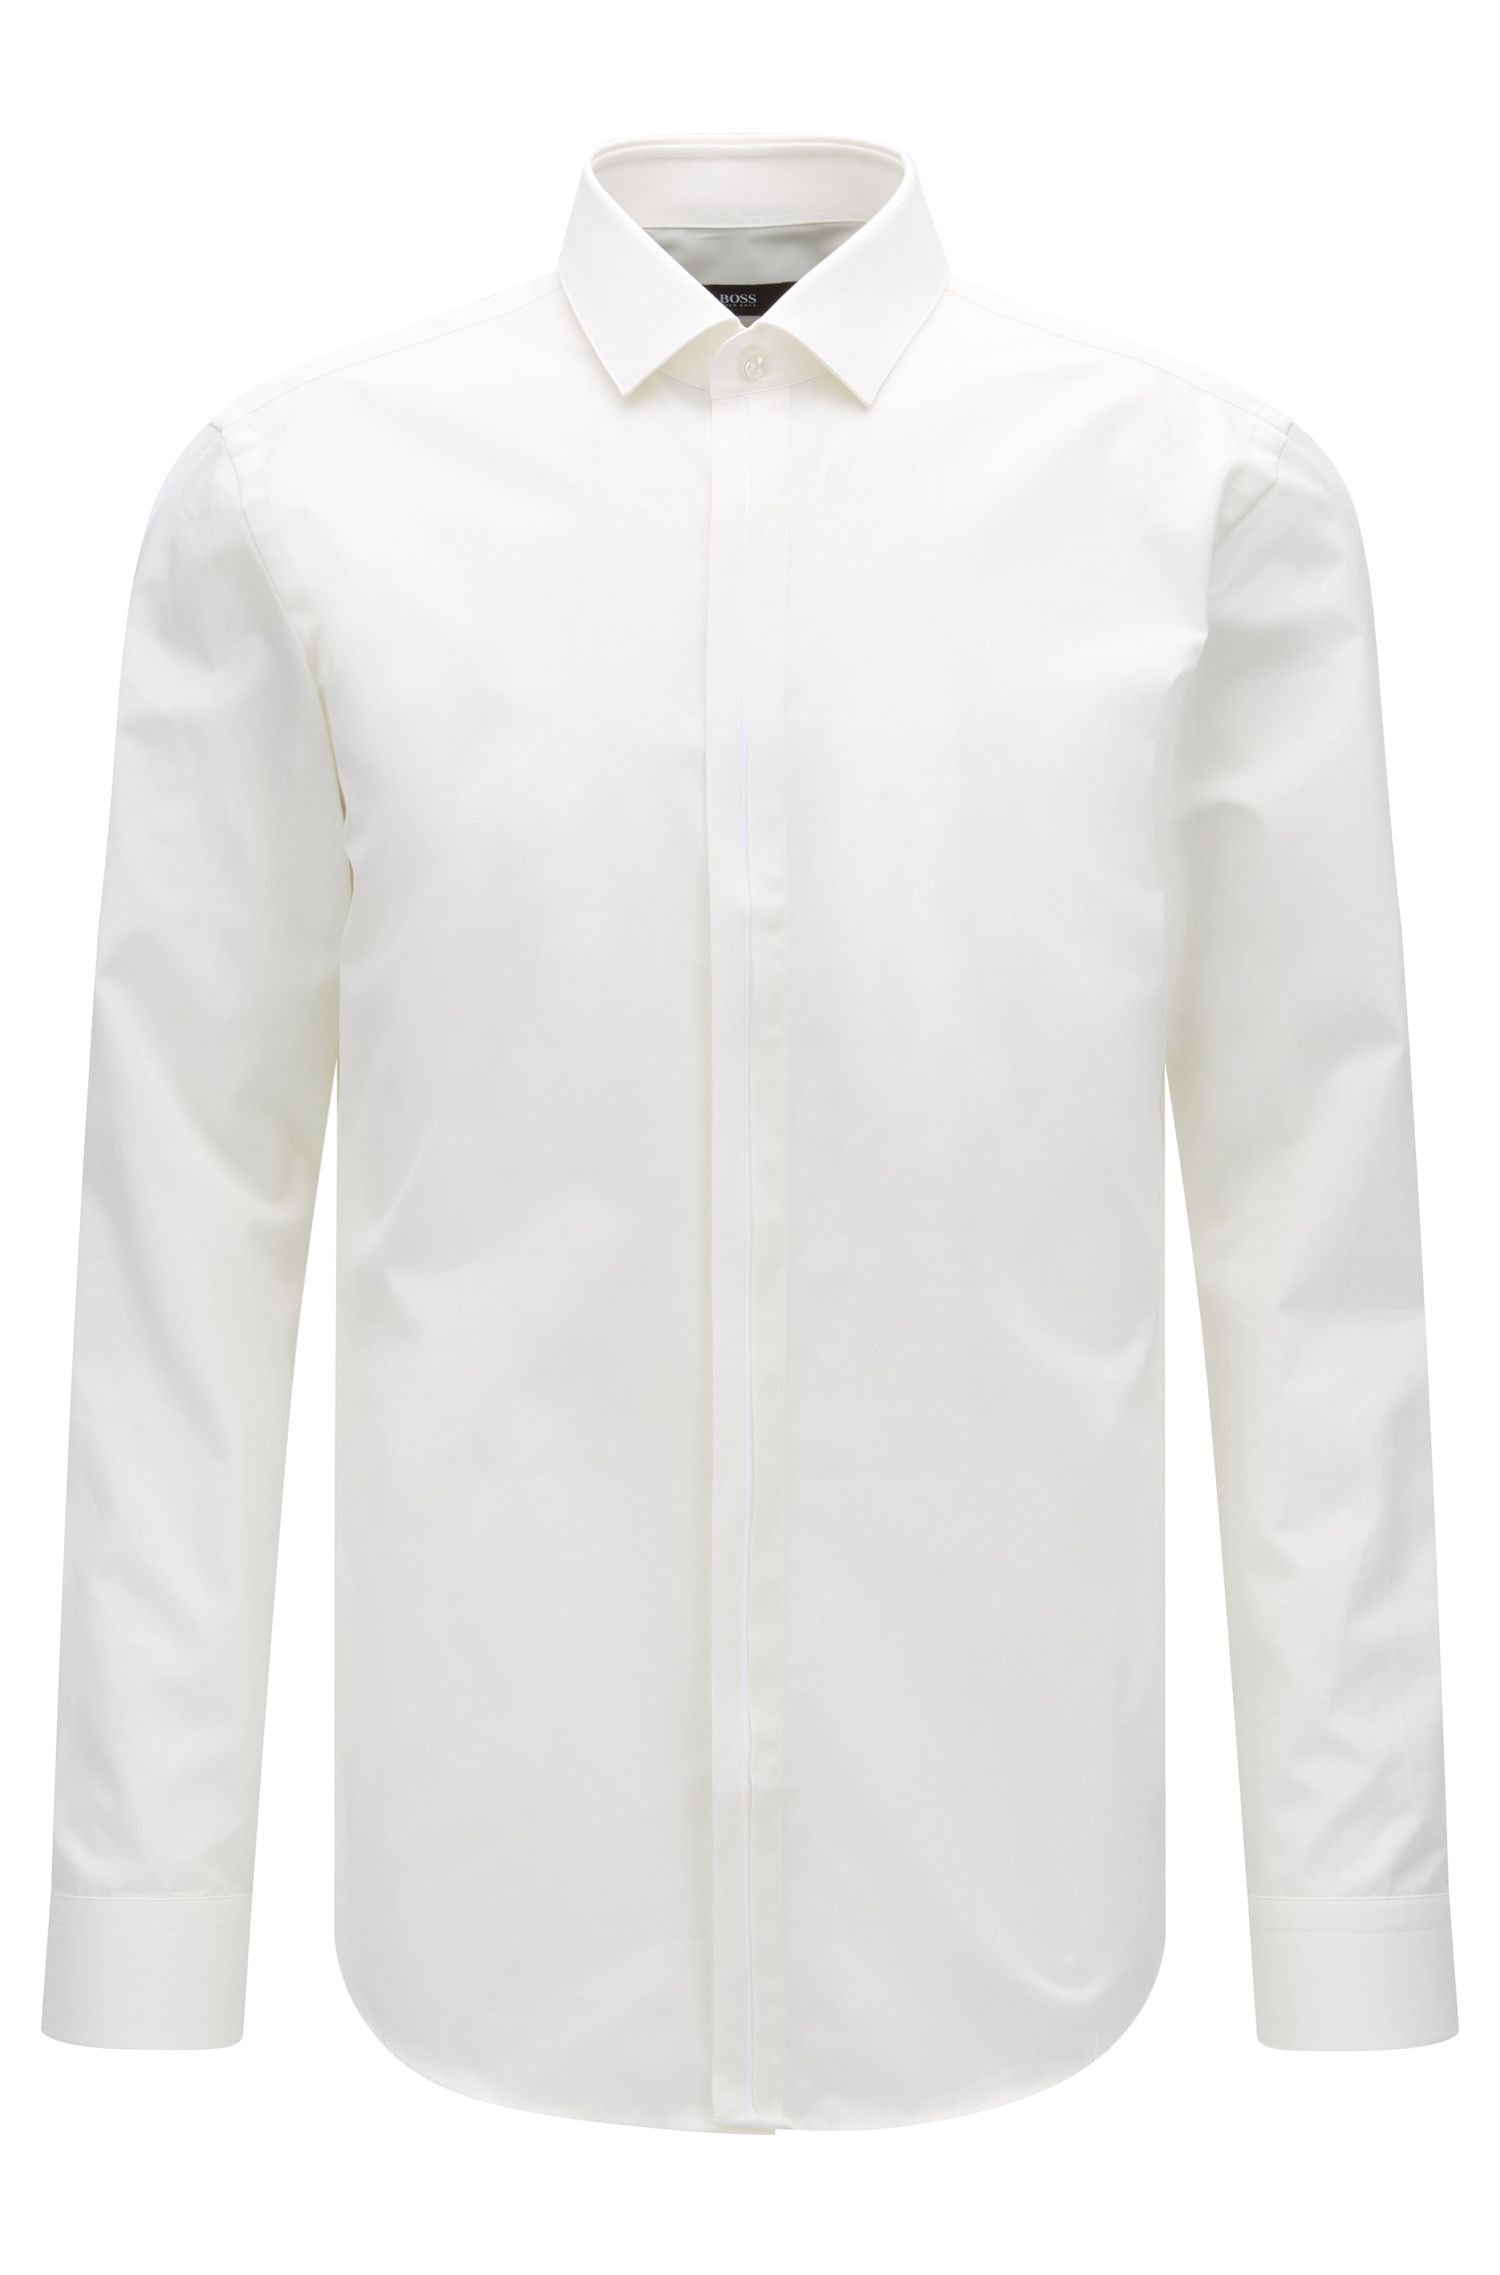 Slim-fit Italian cotton shirt with contrast placket